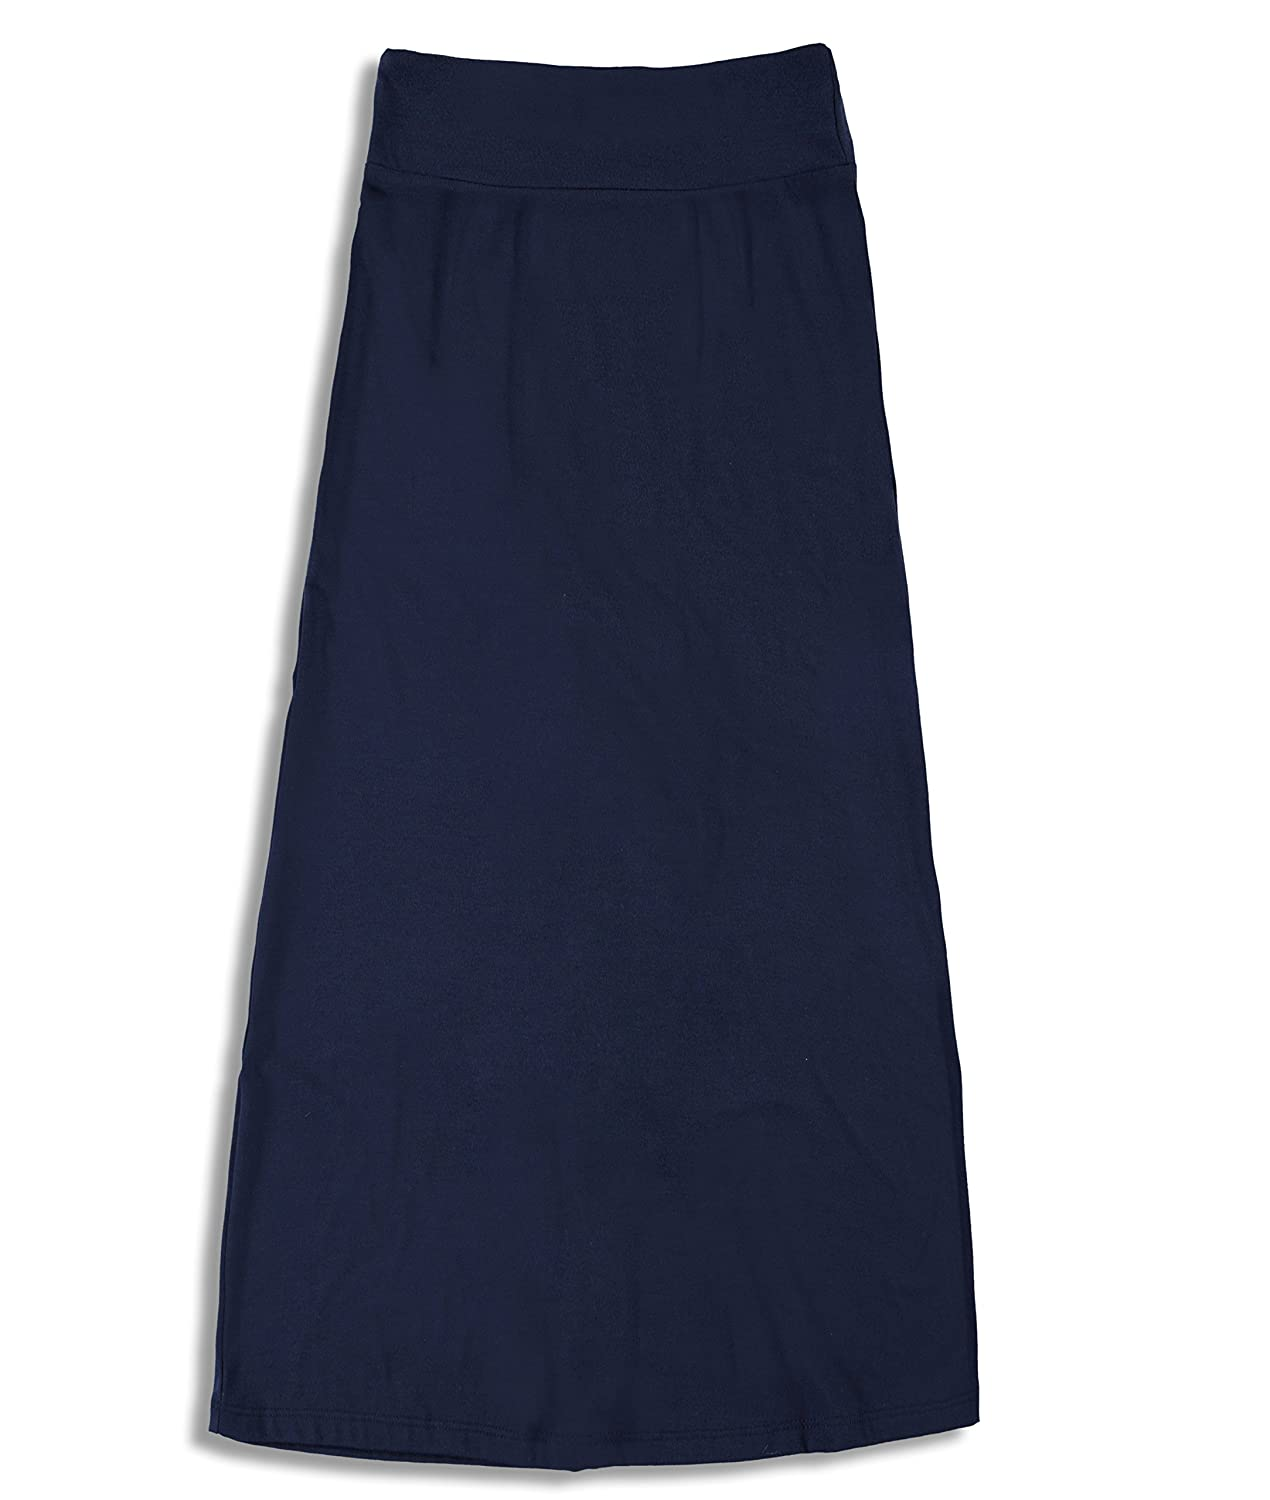 Free to Live 3 Pack Girls 7-16 Years Old Maxi Skirts Great for Uniform